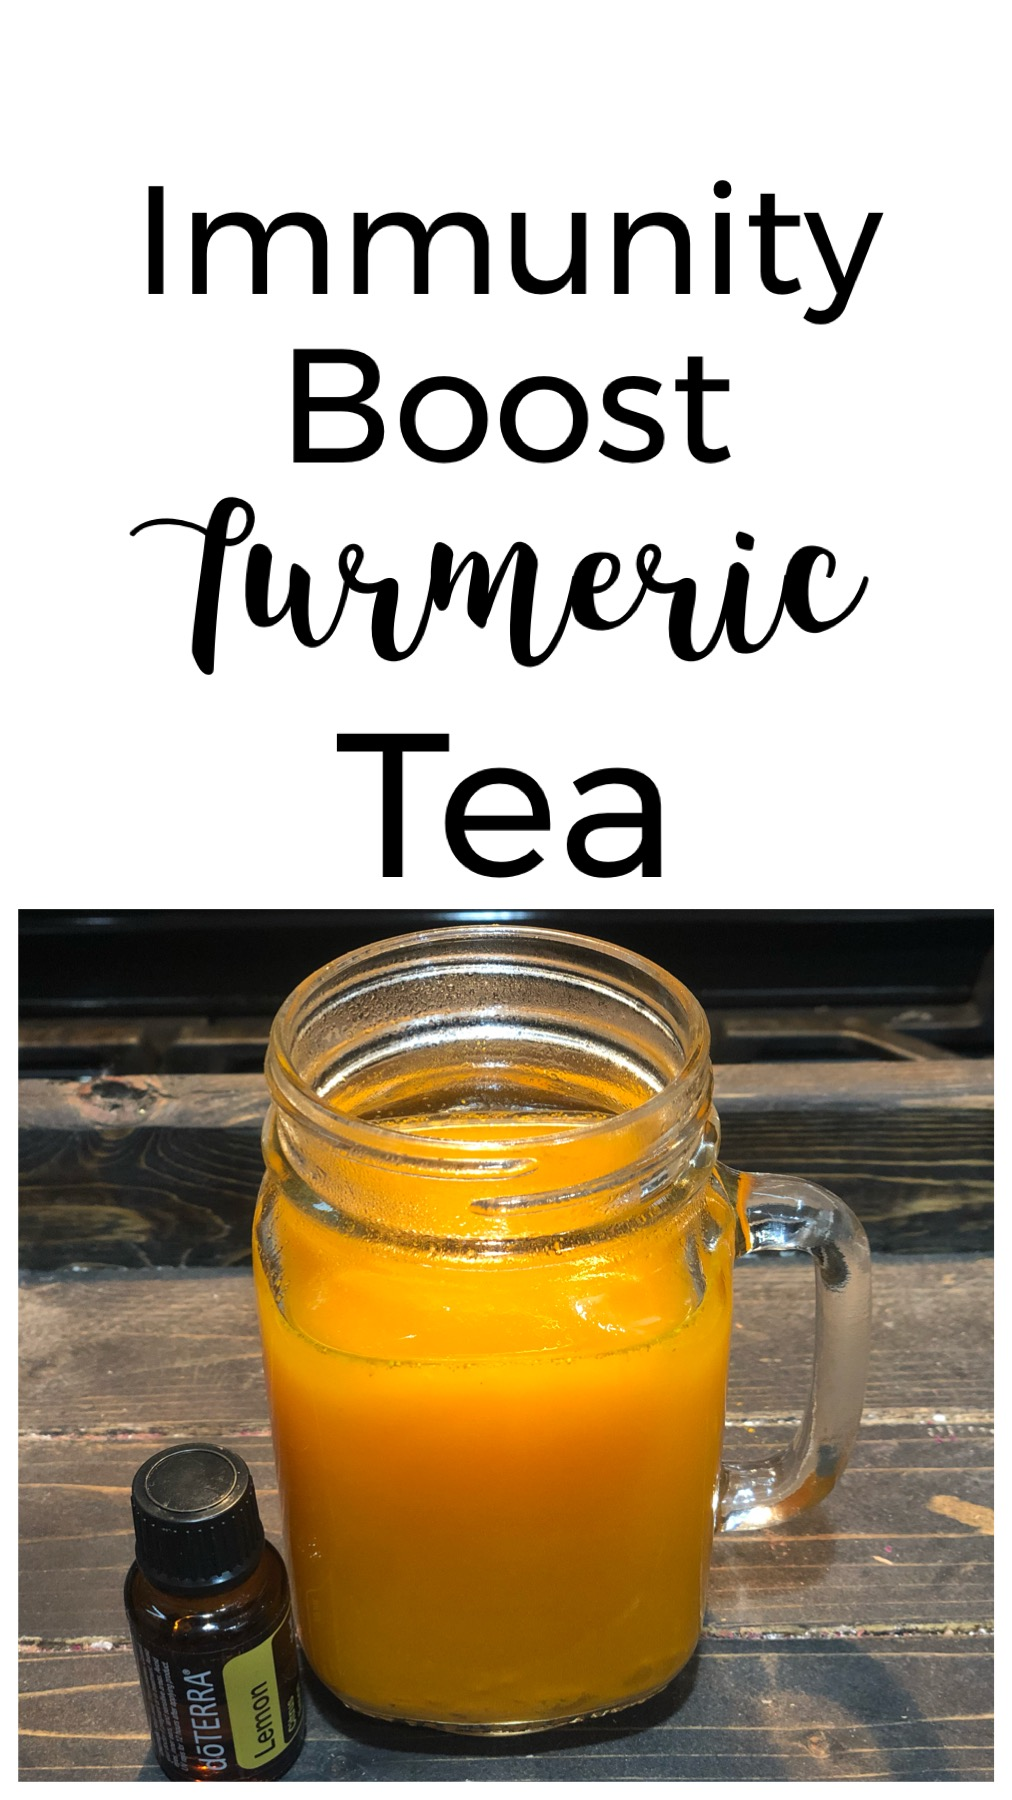 Immunity Boost Turmeric Tea - Hey guys, I'm back with another great drink recipe! This Immunity Boost Turmeric Tea is a great way to boost your immune system!